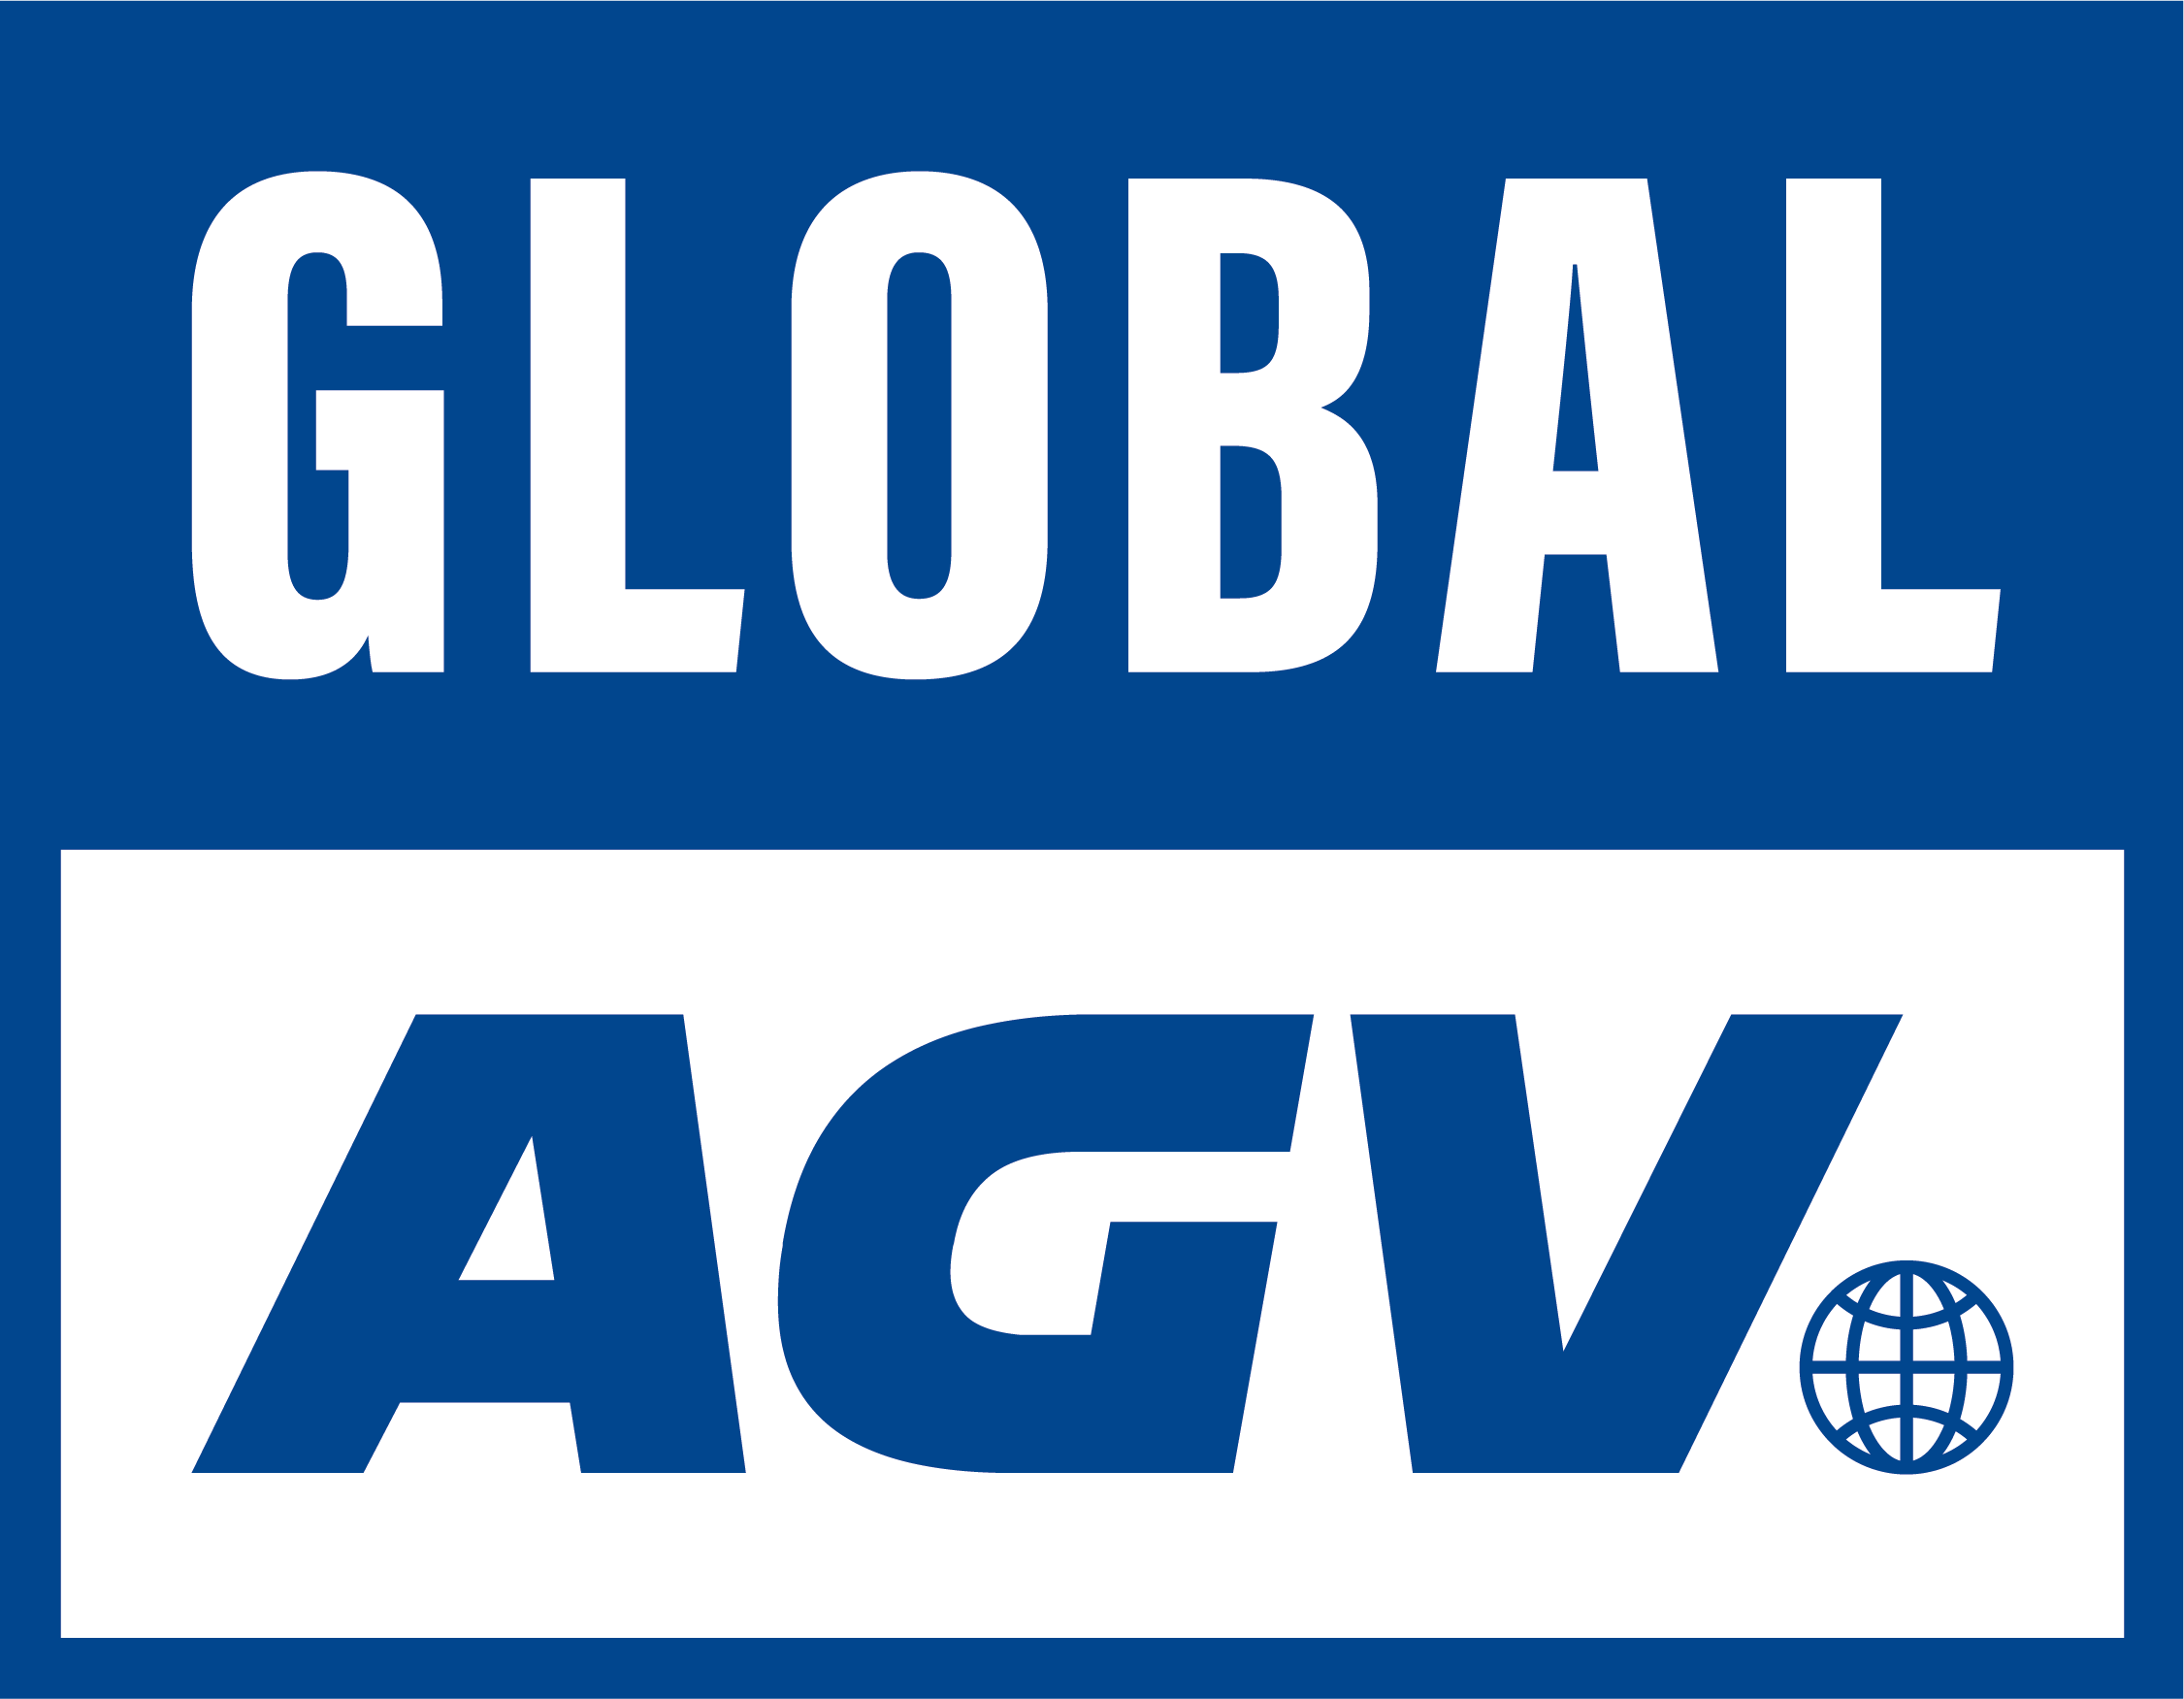 Autonomous Forklifts Key to Material Handing According to Nic Temple VP of U.S. Sales at Global AGV